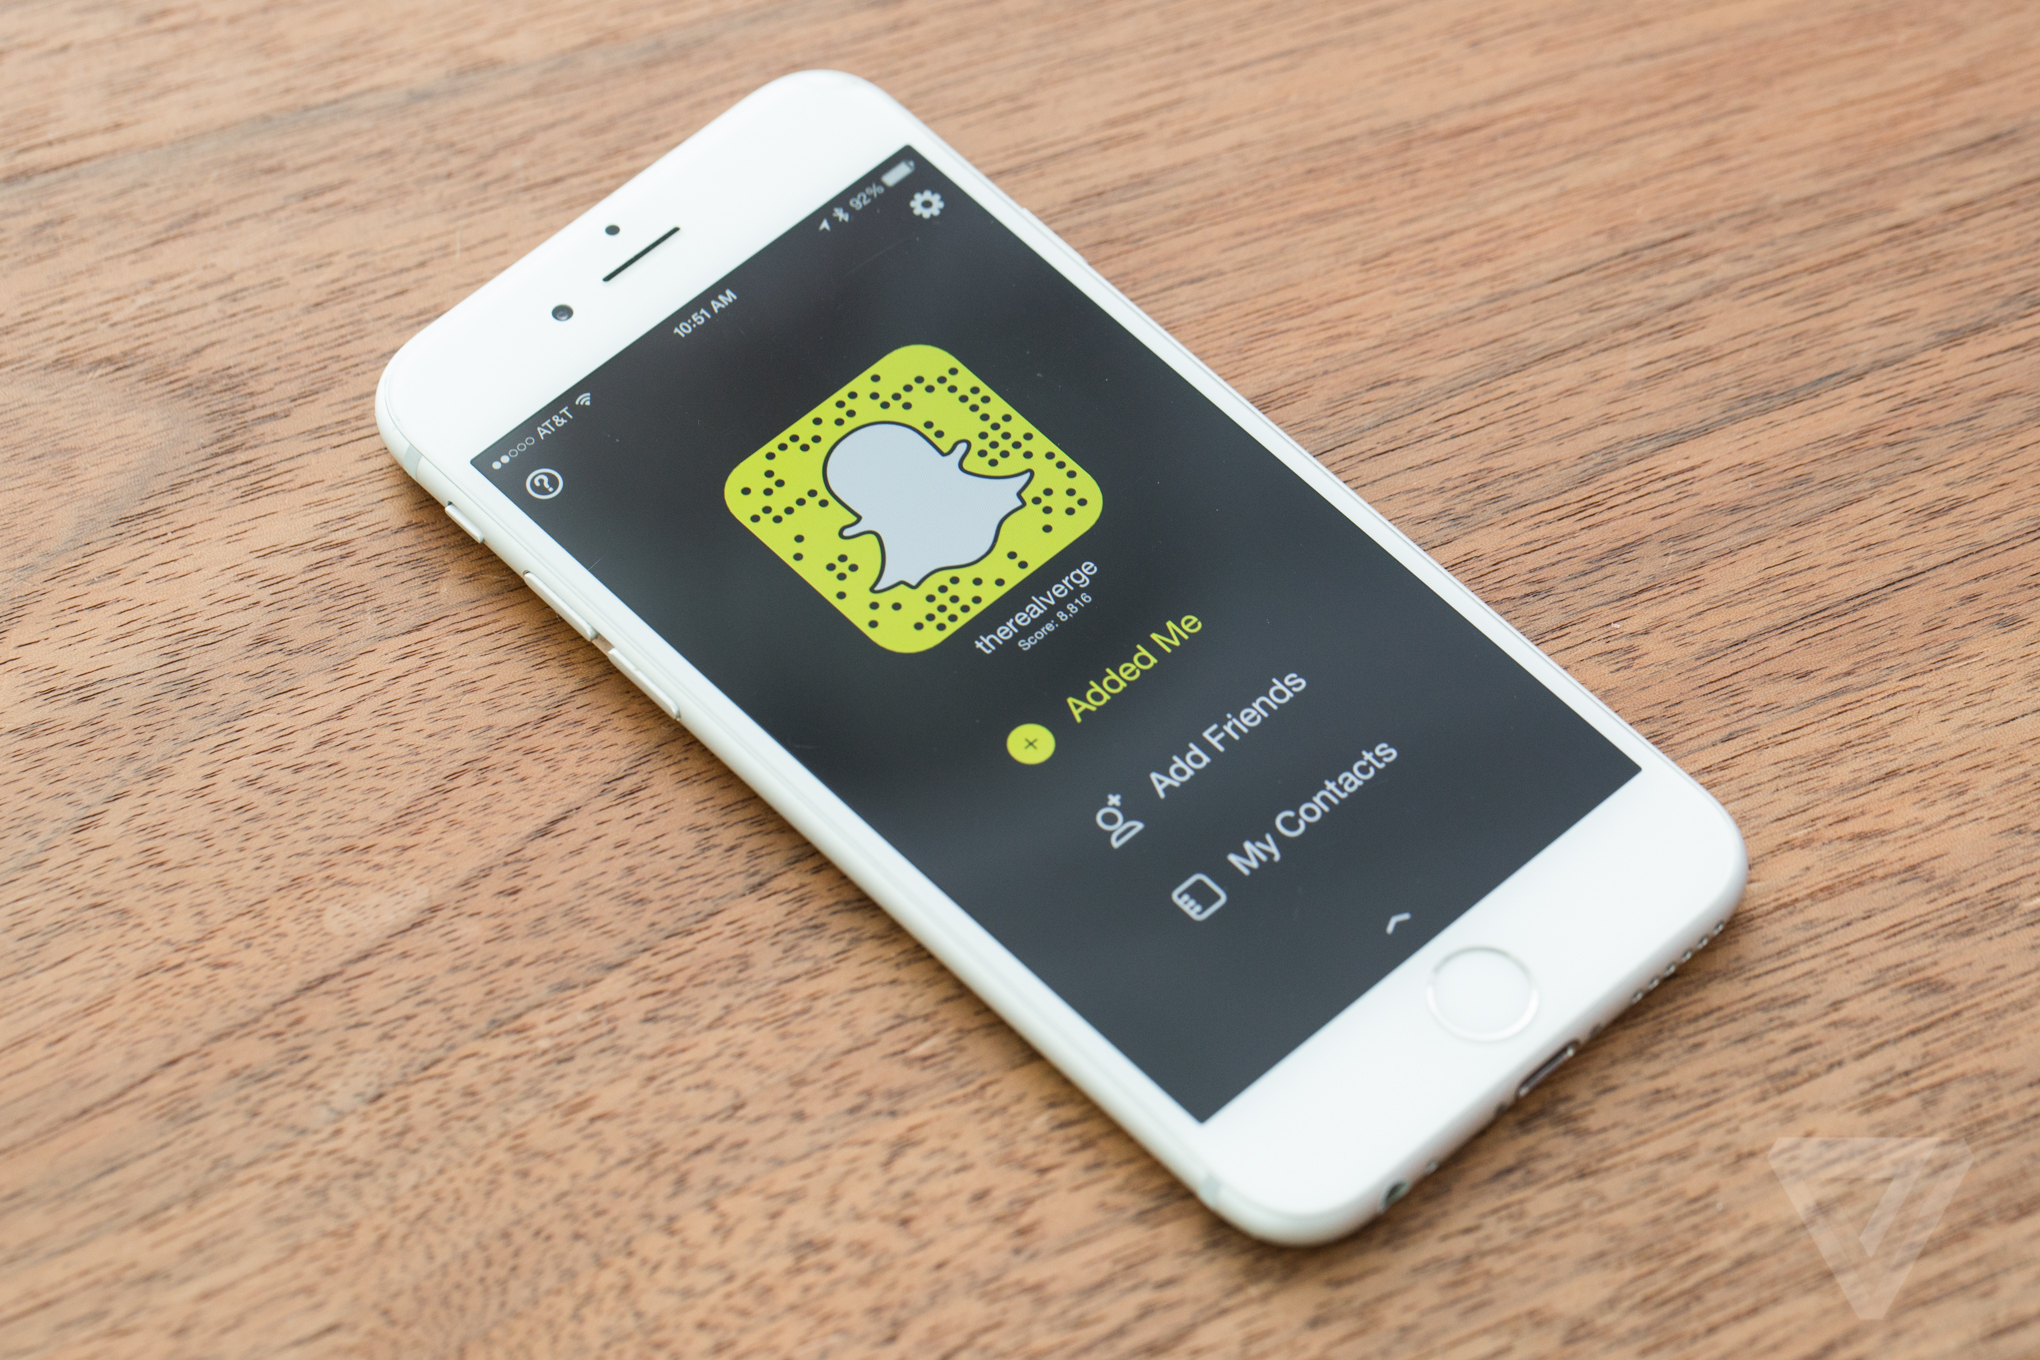 The only official Snapchat instruction manual is buried in